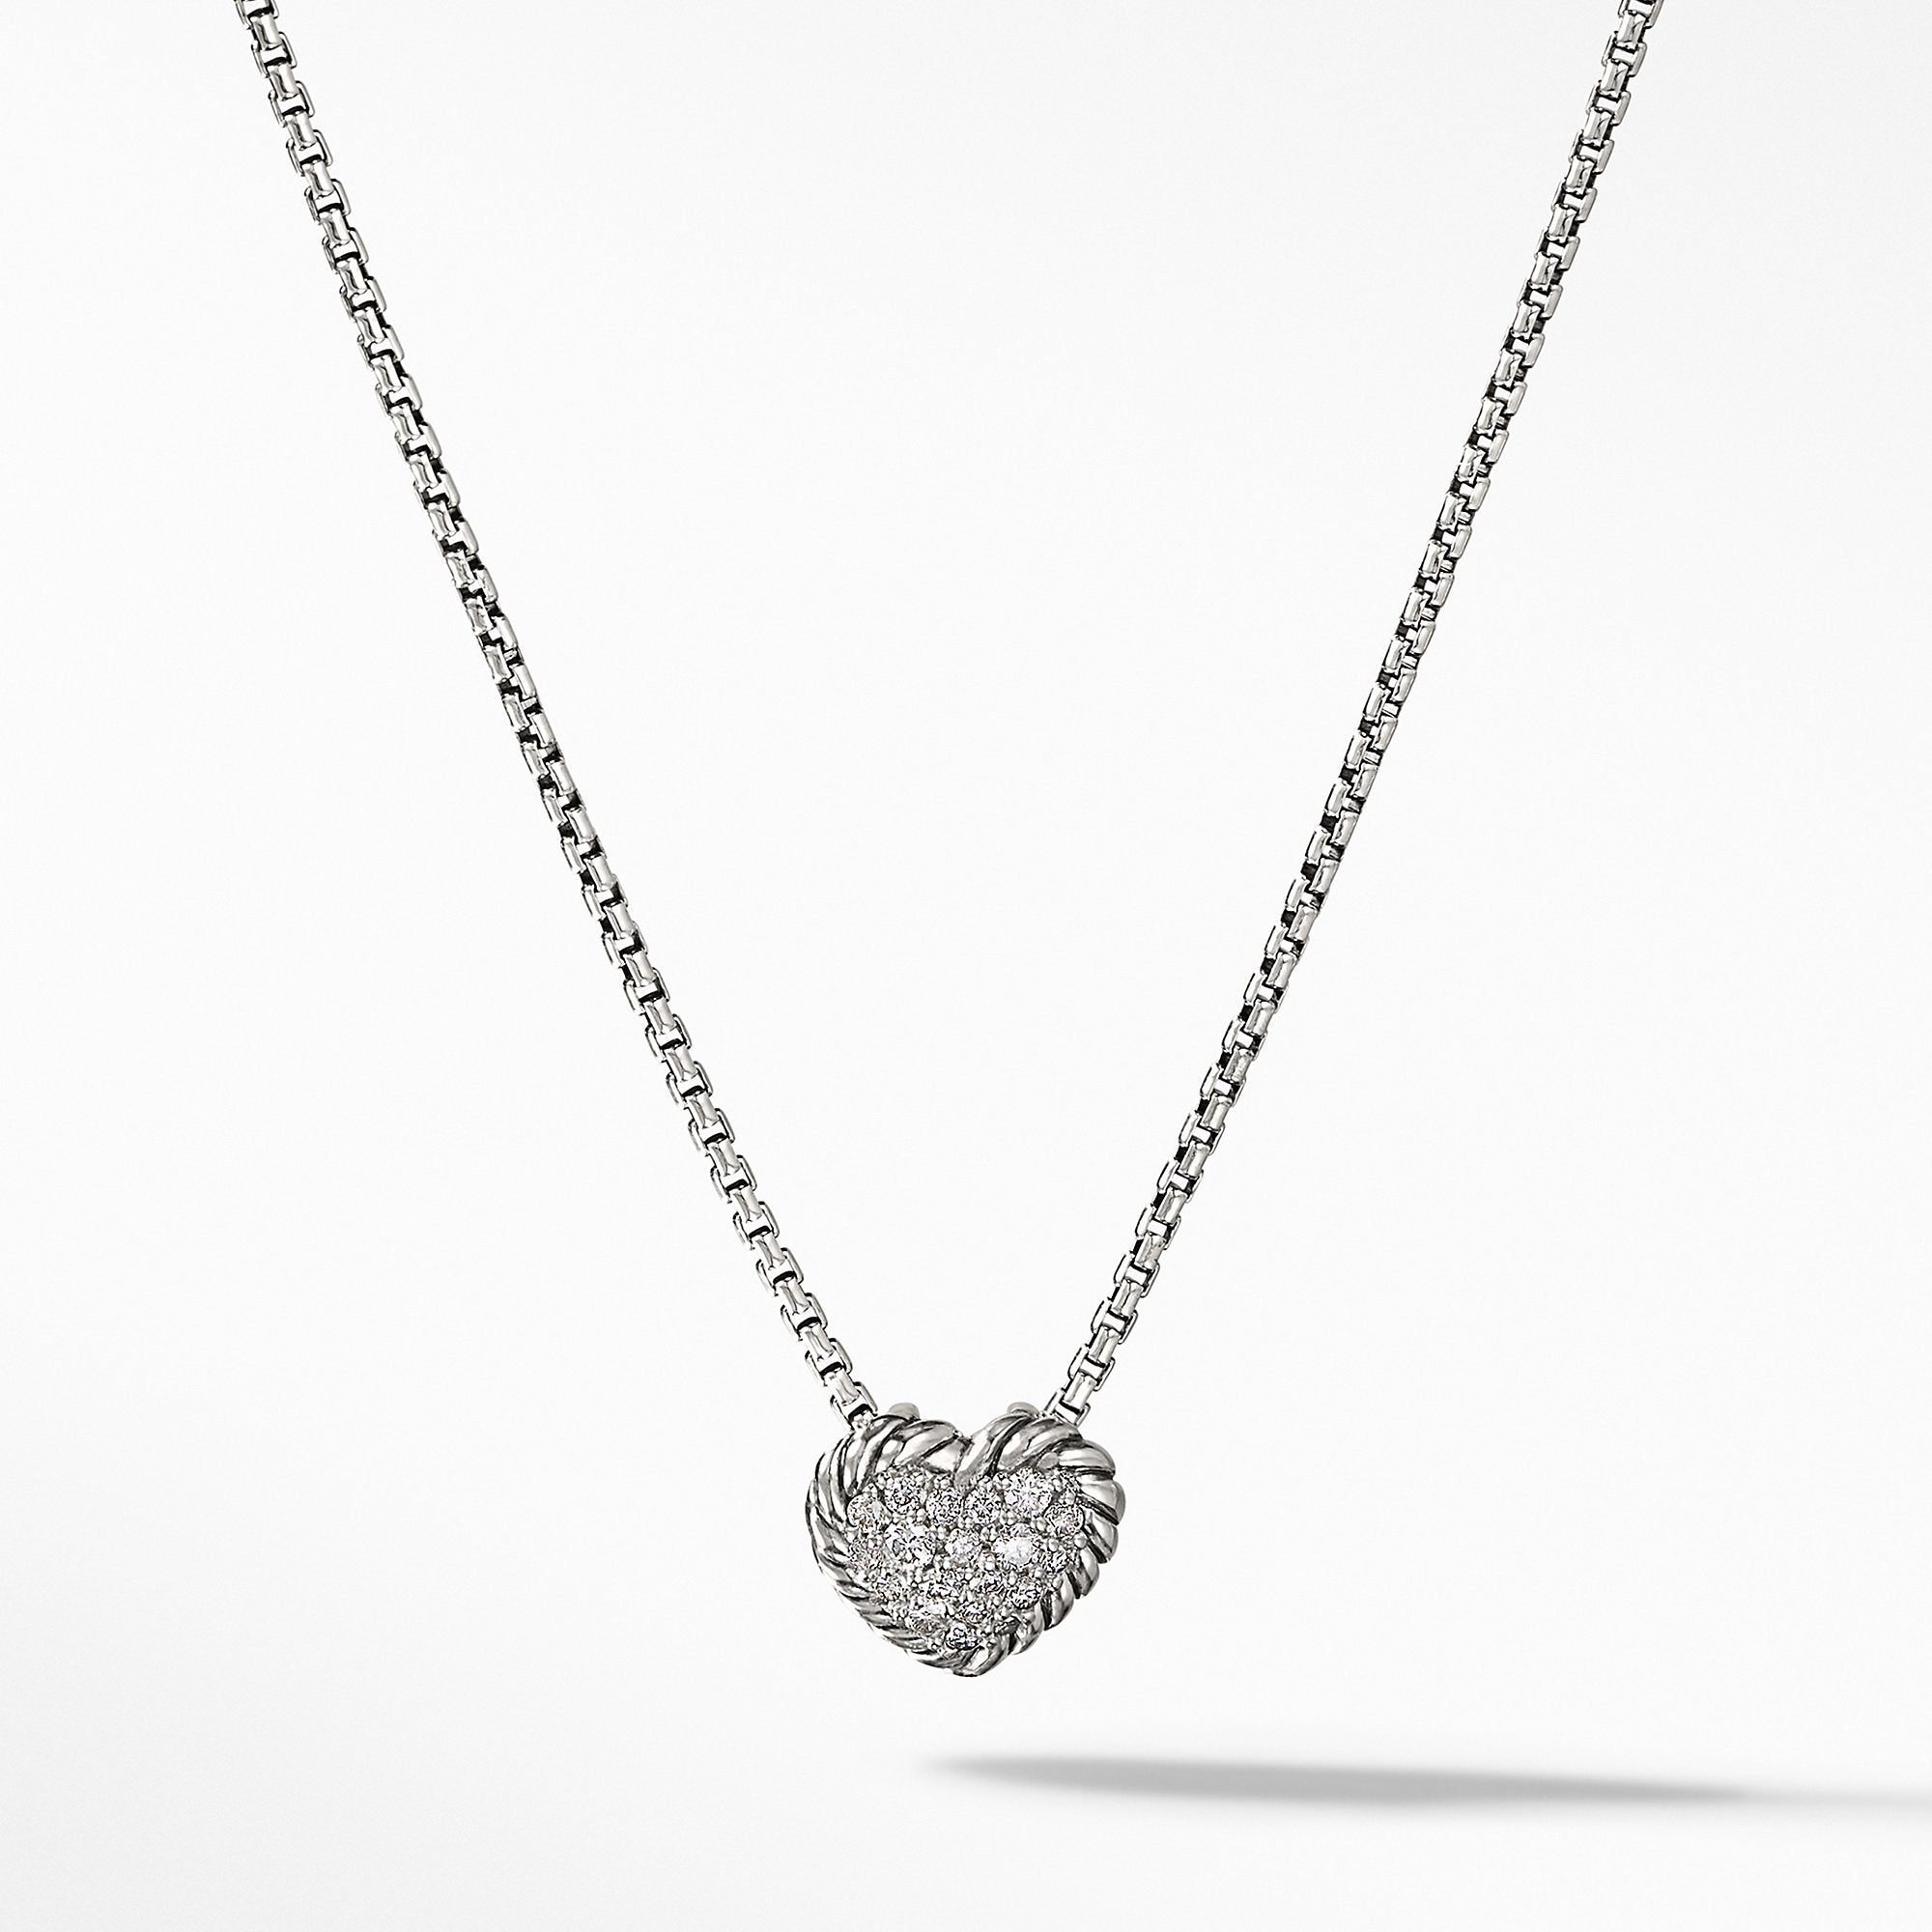 Petite Pave Heart Pendant Necklace with Diamonds